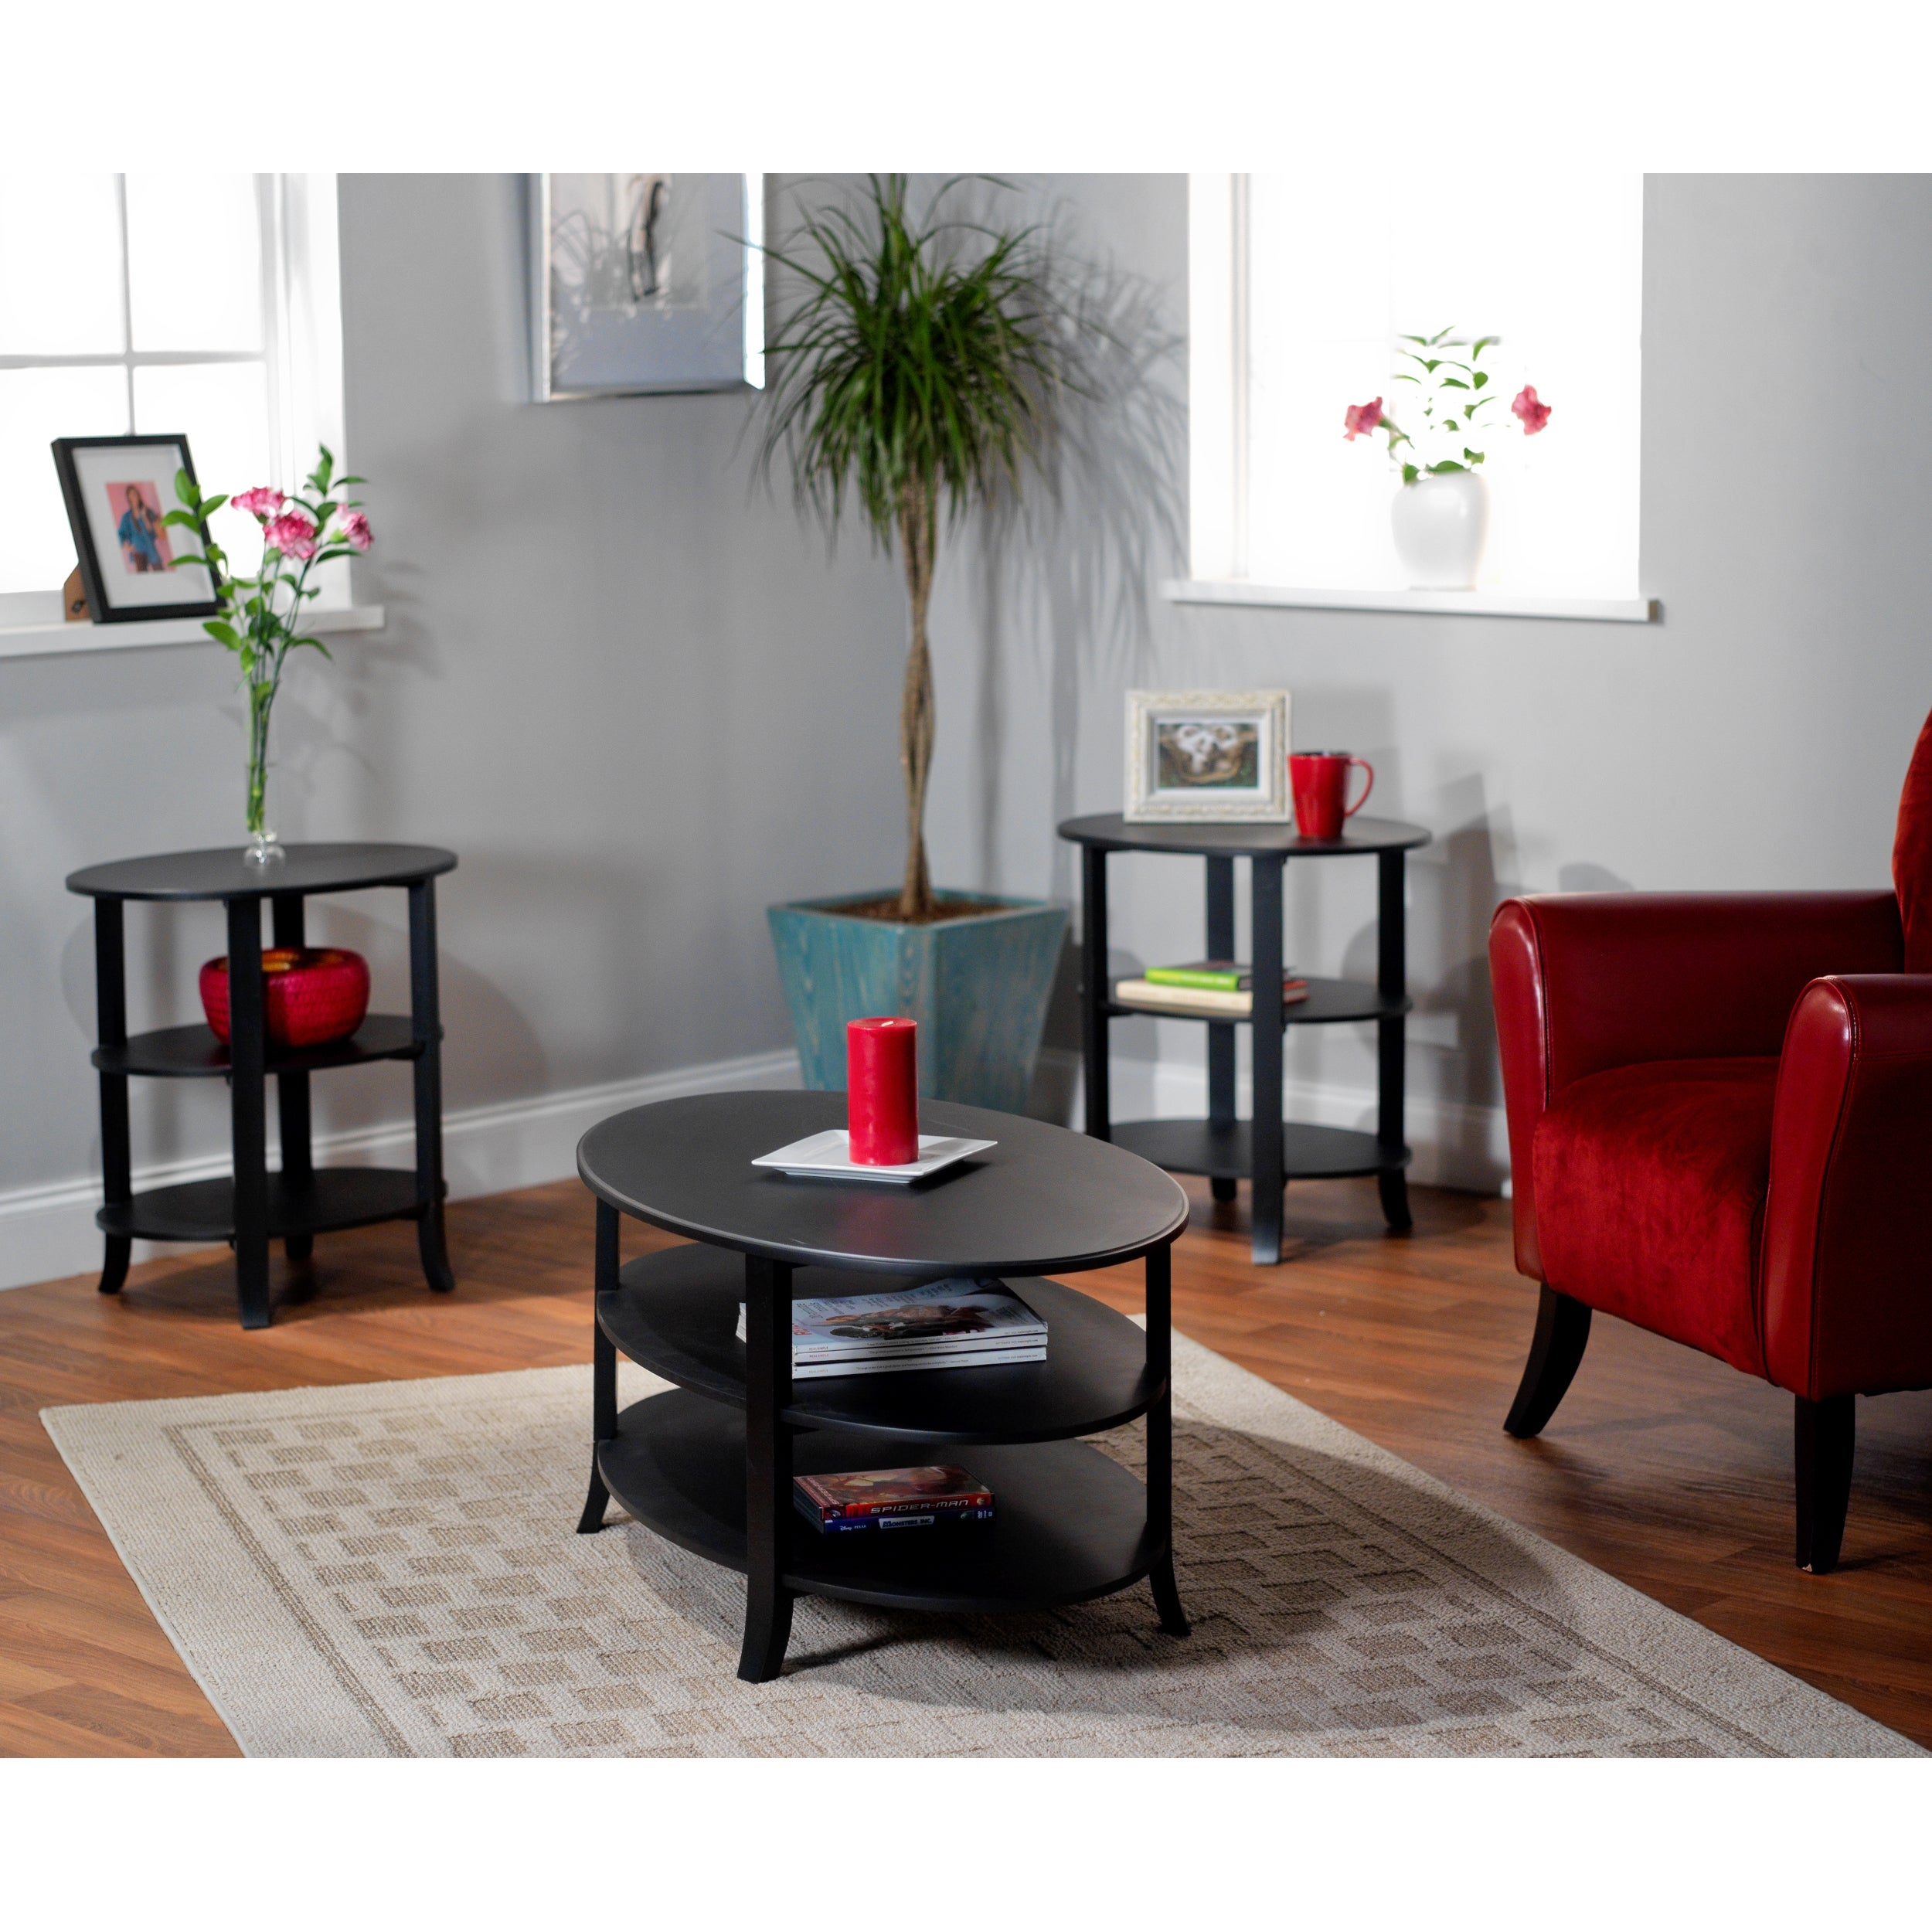 3 Piece Oval Coffee Table Set: Simple Living Black Oval 3-piece Coffee, End And Hall